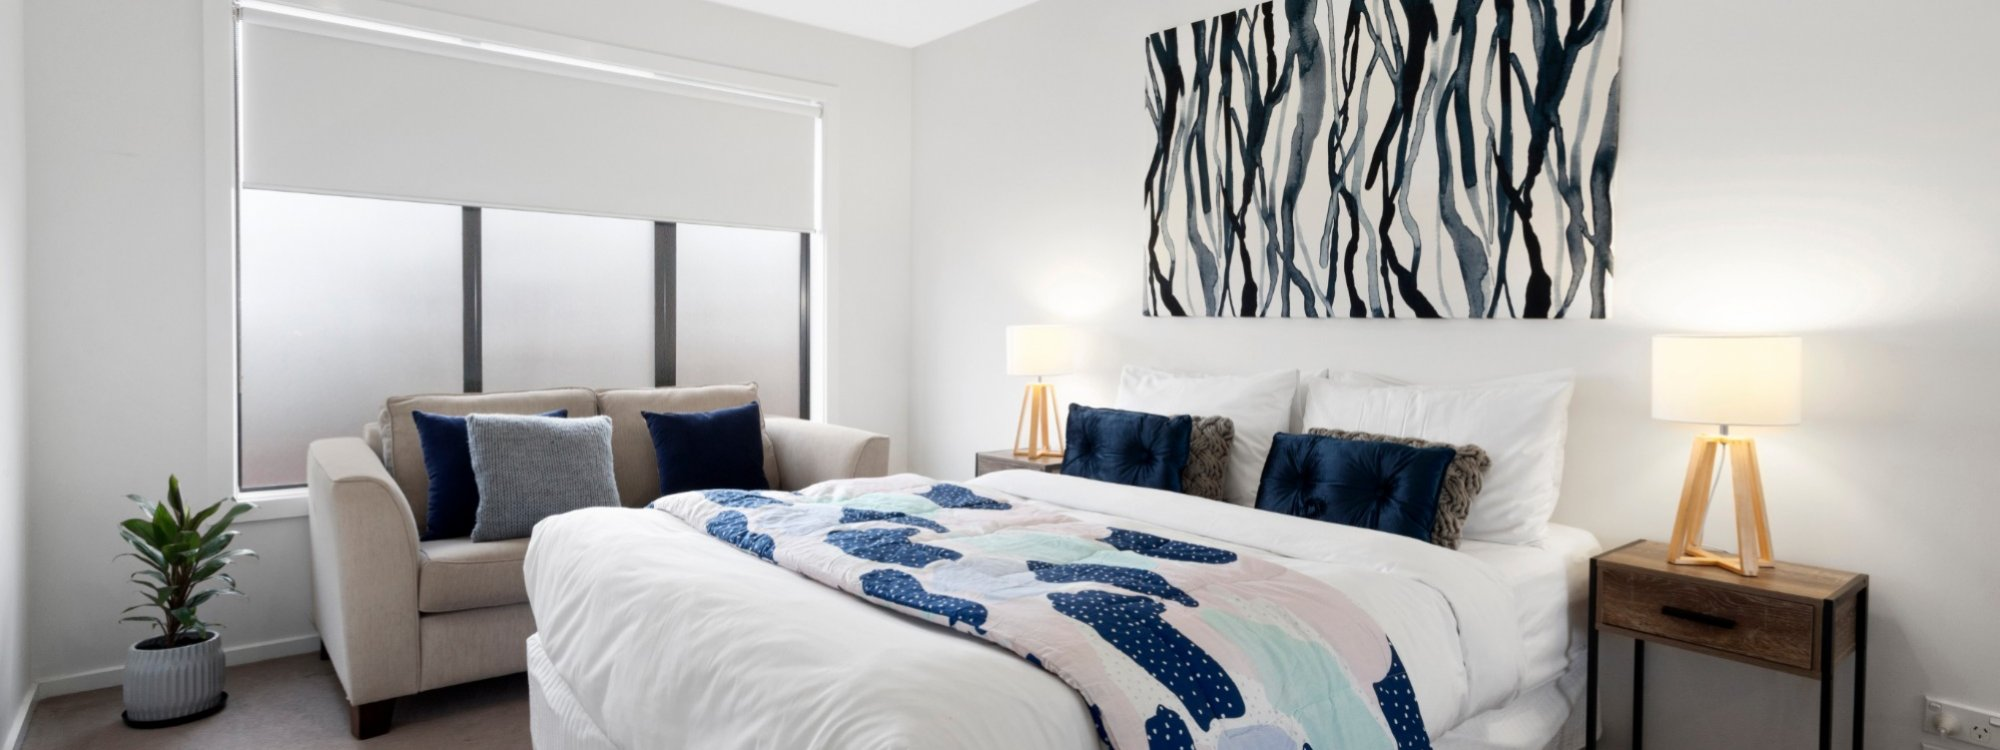 Manallack Apartments Whiteley - Melbourne - Queen Bedroom 3